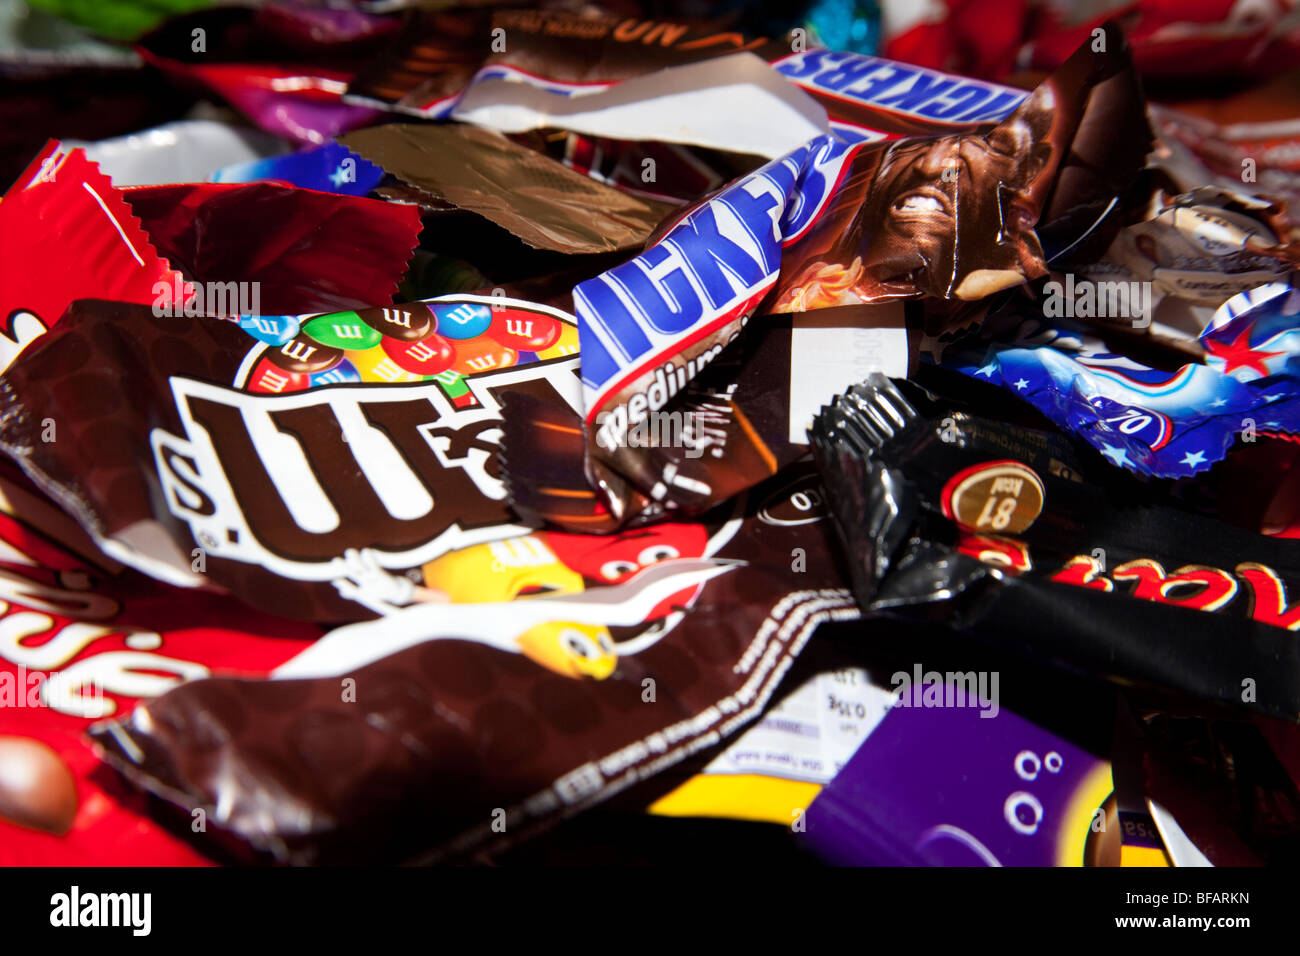 Assorted sweet or candy bar wrappers - Stock Image